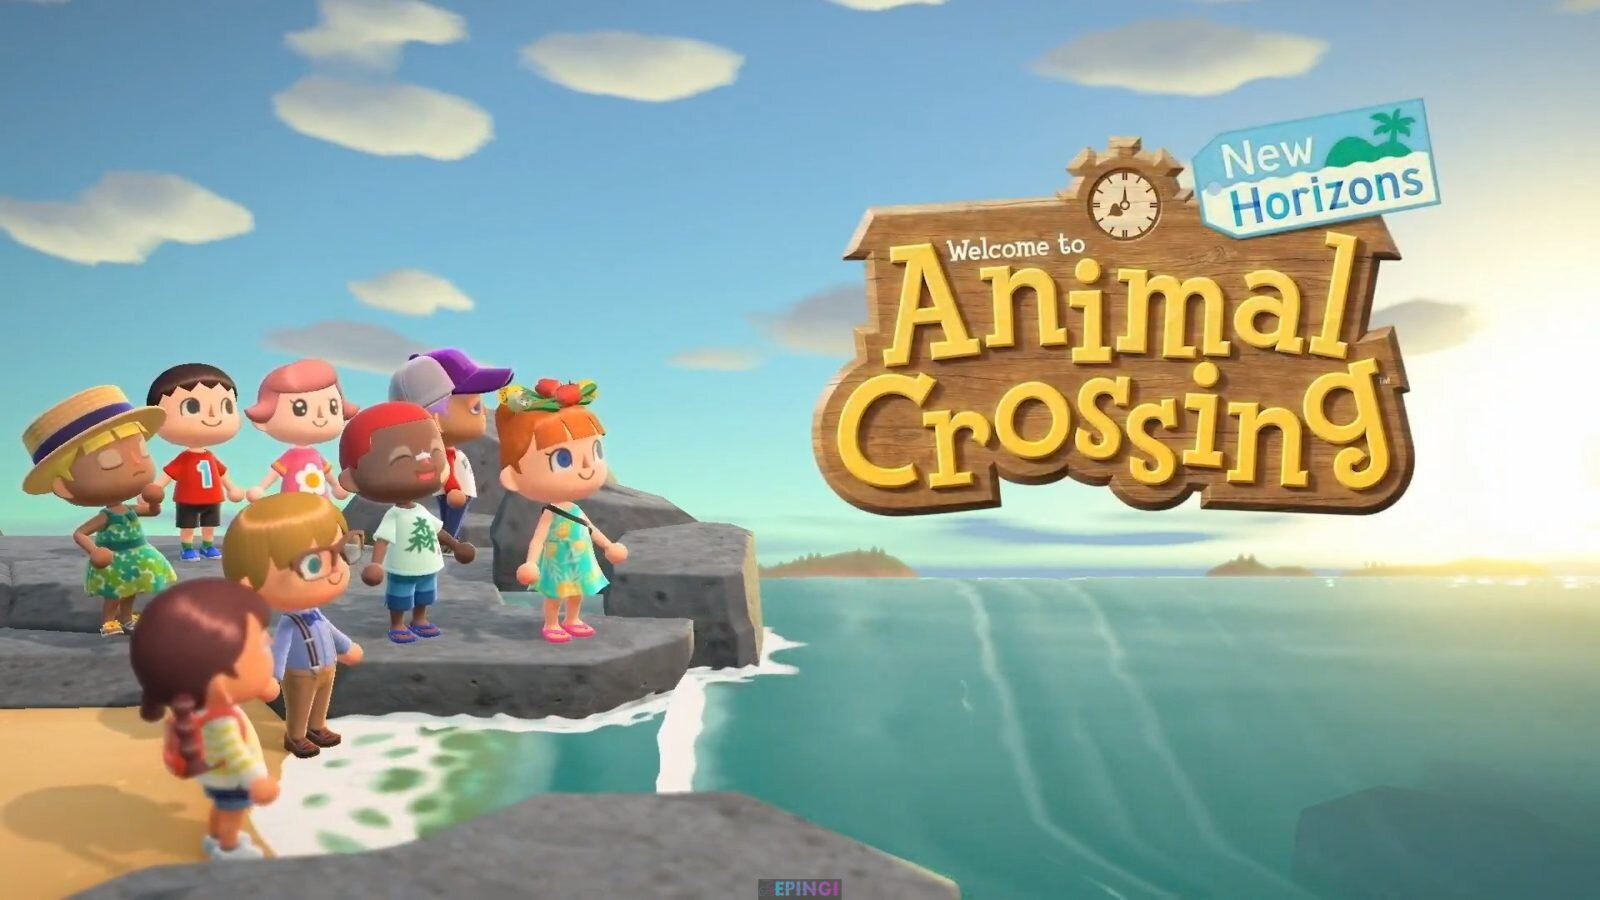 Animal Crossing: New Horizons - All the Fish, Where to Fish Them, and Prices